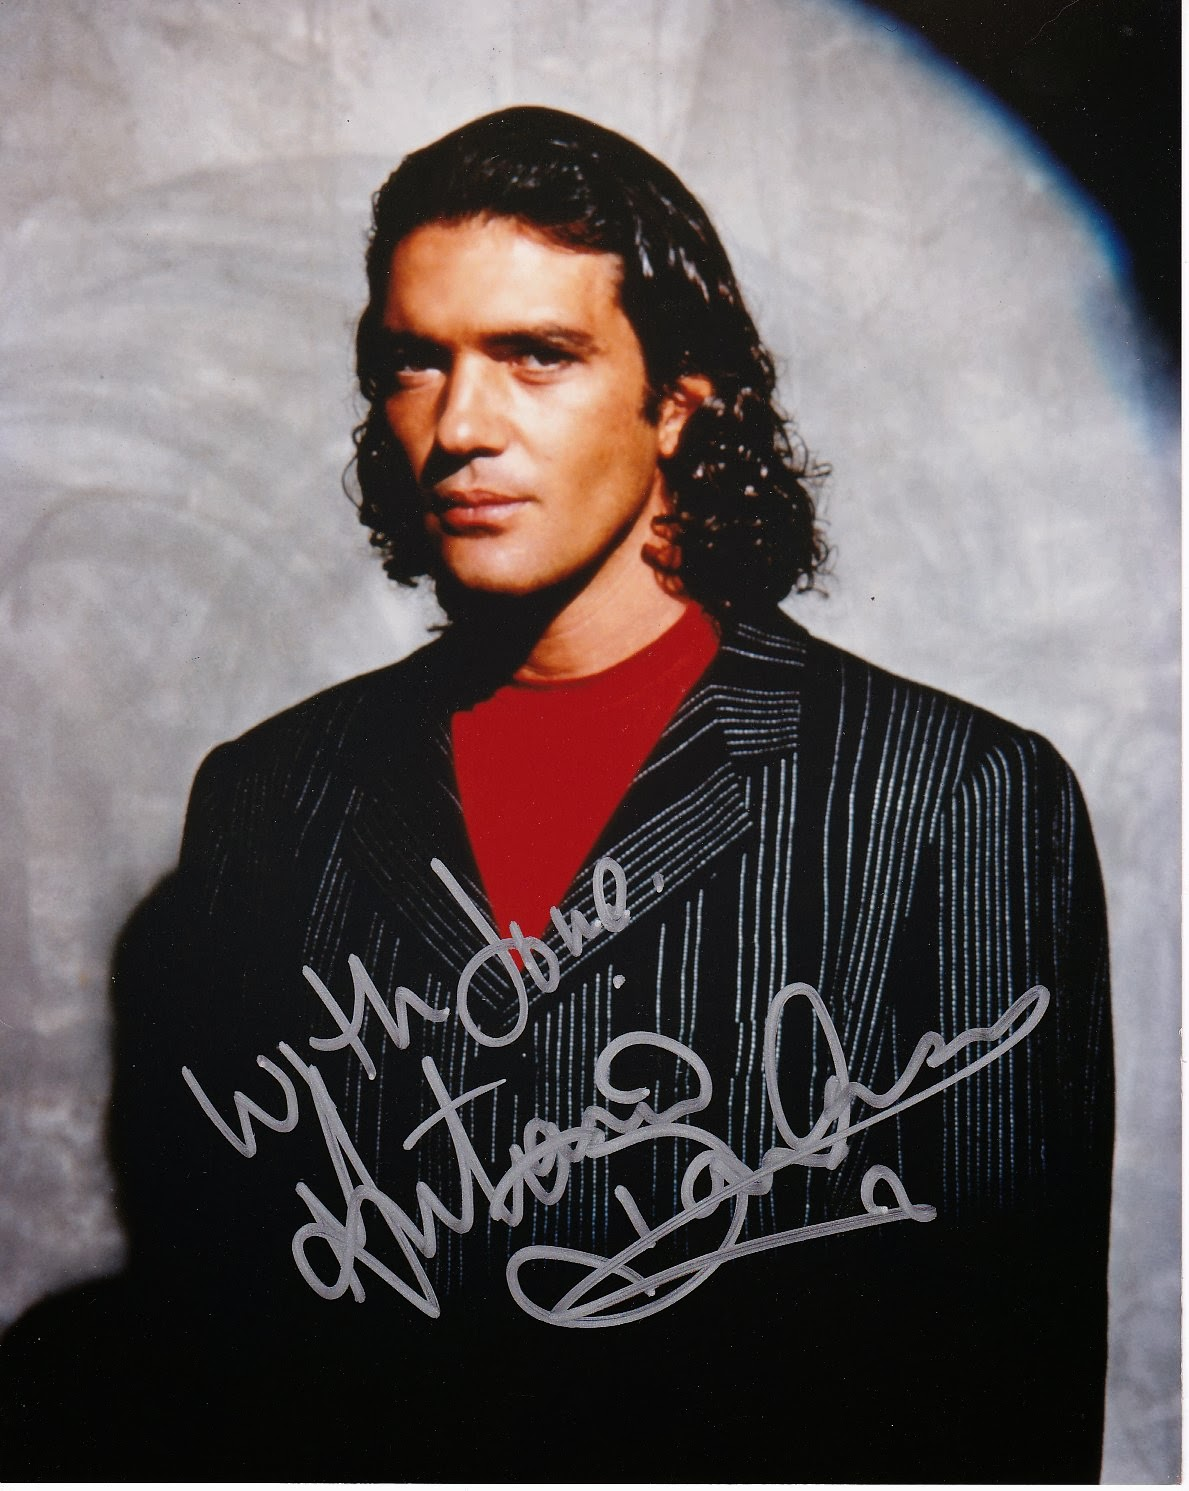 Movie STAR! Antonio Banderas autograph 8x10 photo $35.00